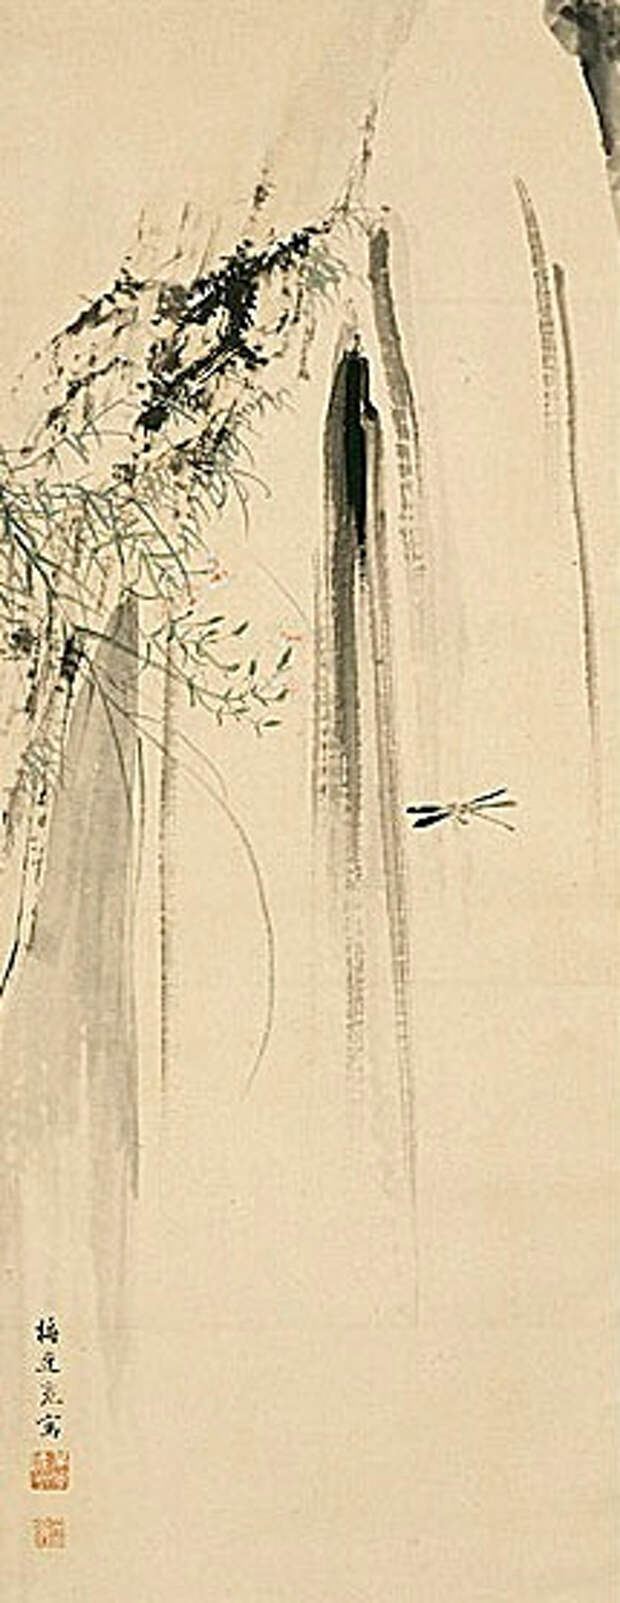 Iris and Insect; Dragonfly and Pinks with Waterfall. (215x556, 117Kb)